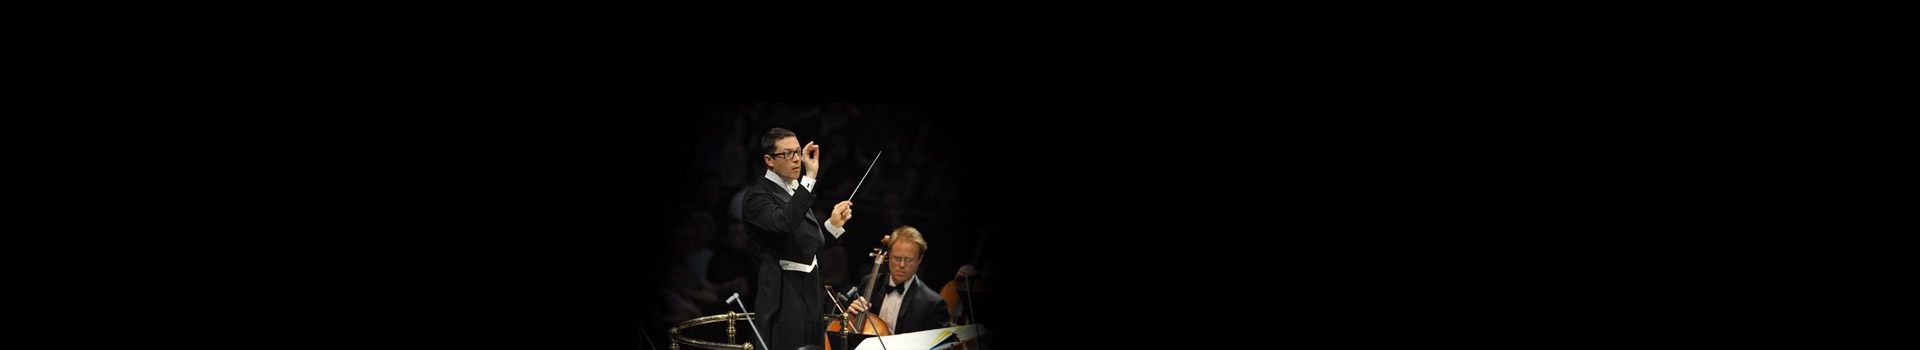 John Wilson Orchestra tickets at the Royal Albert Hall